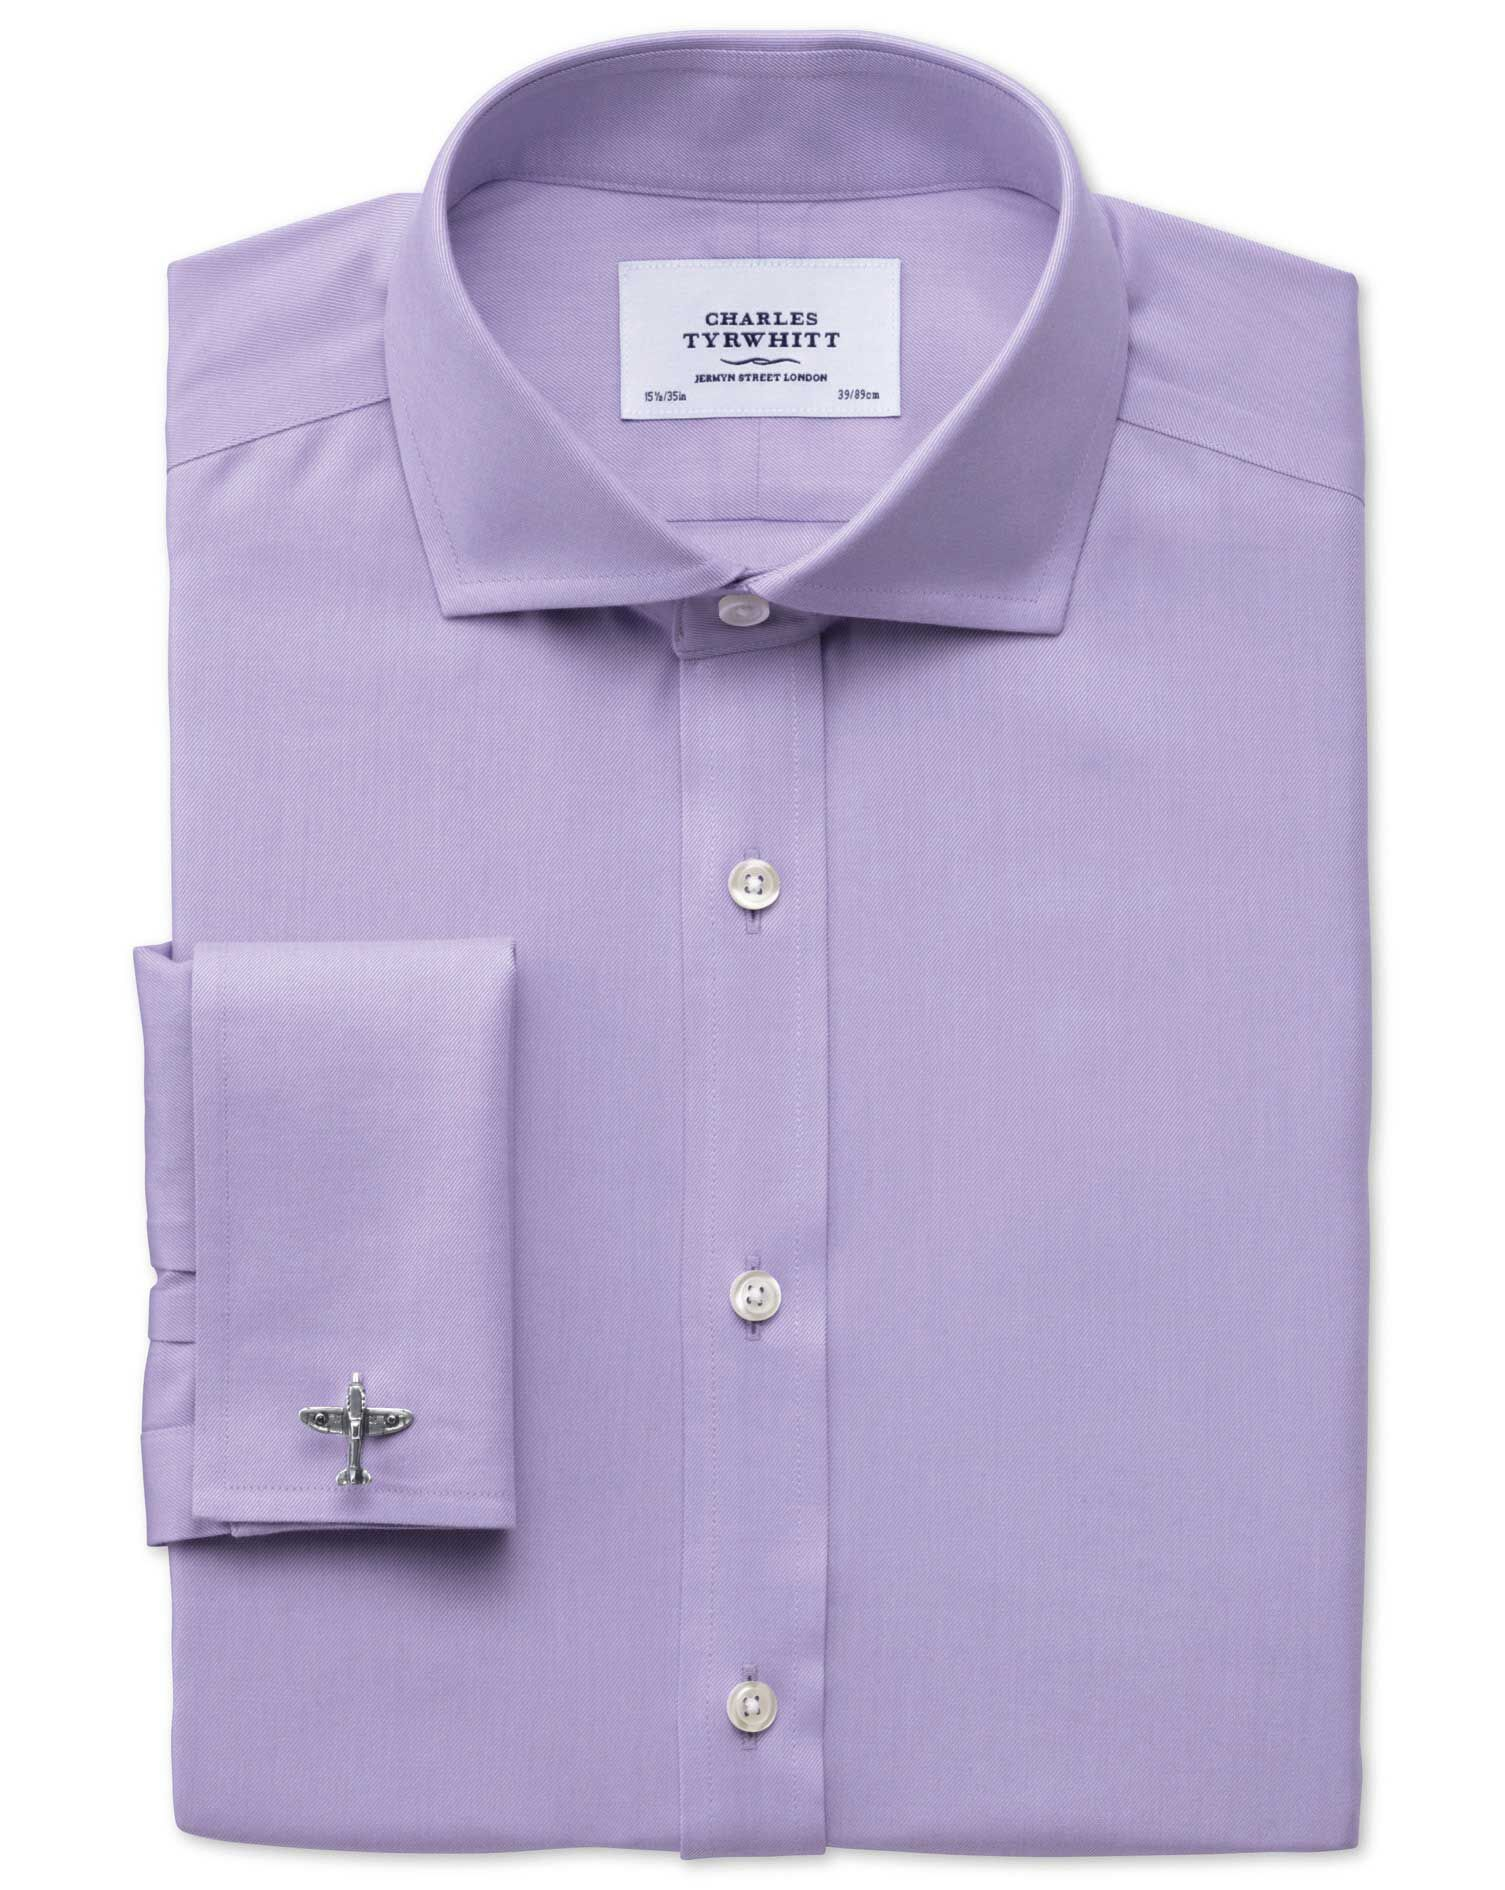 Extra Slim Fit Cutaway Collar Non-Iron Twill Lilac Cotton Formal Shirt Double Cuff Size 15/33 by Cha